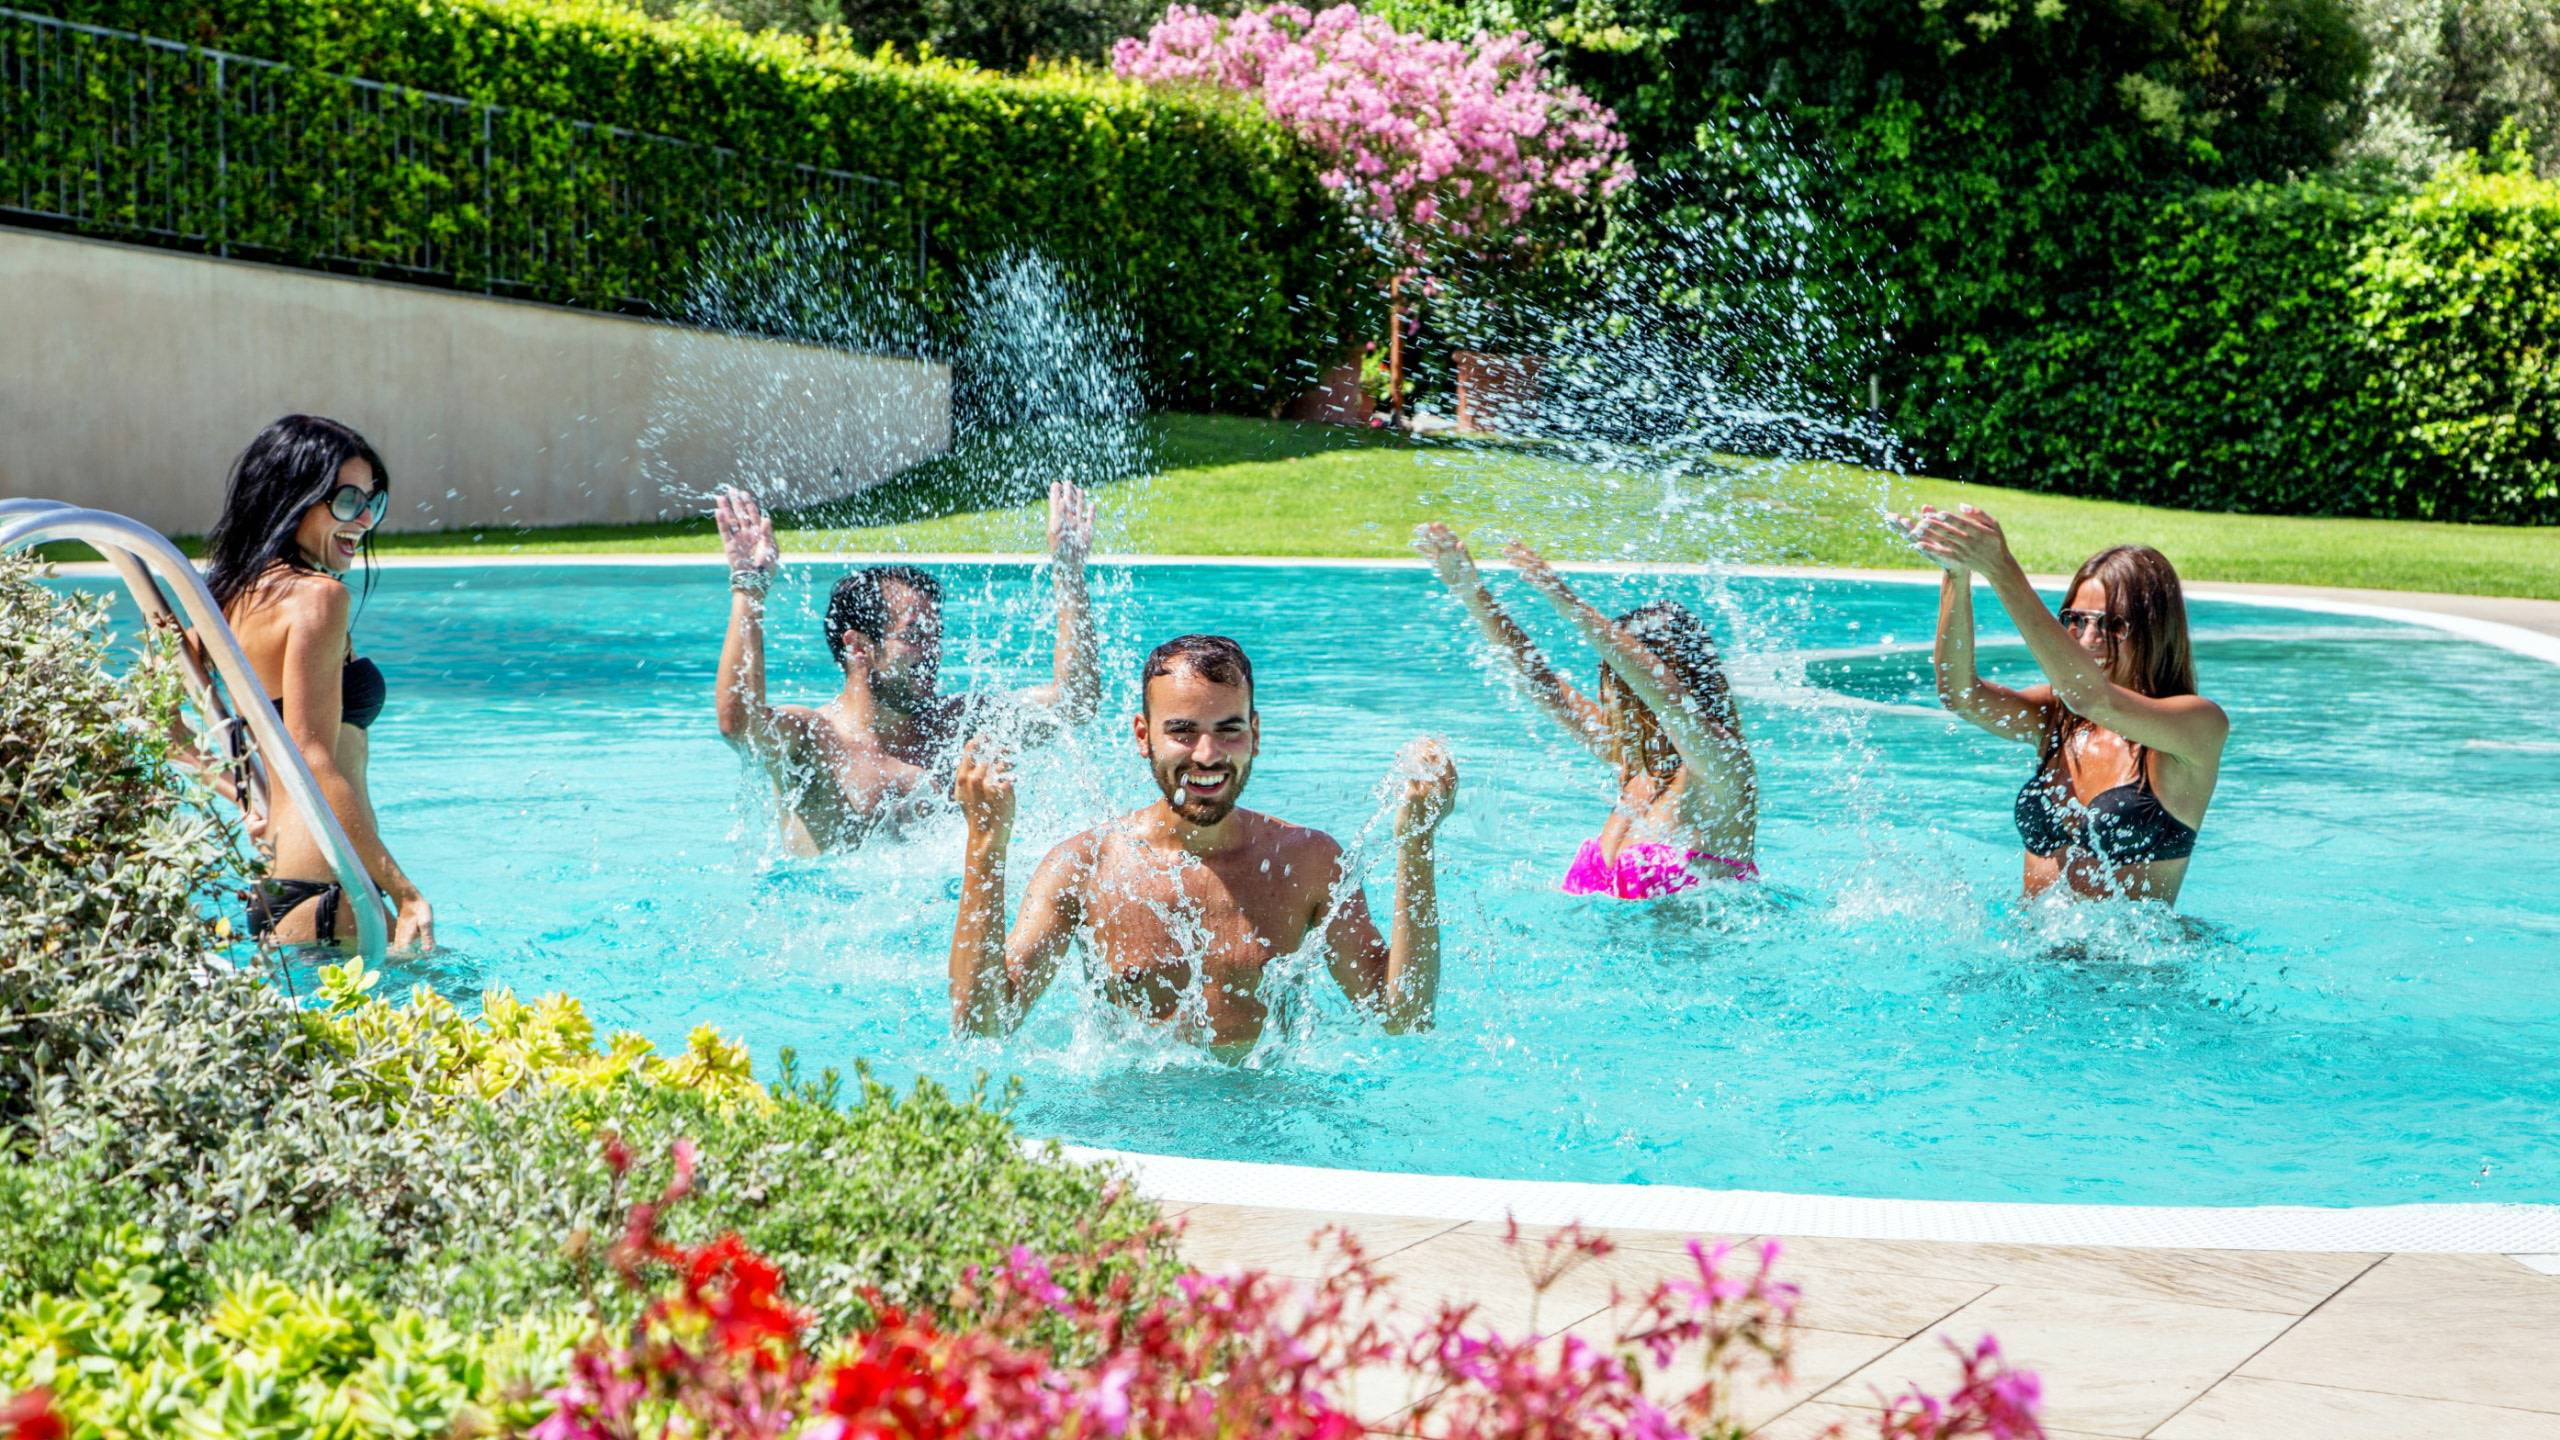 Hotel-Residence-Valle-del-Buttero-Capalbio-pool-49